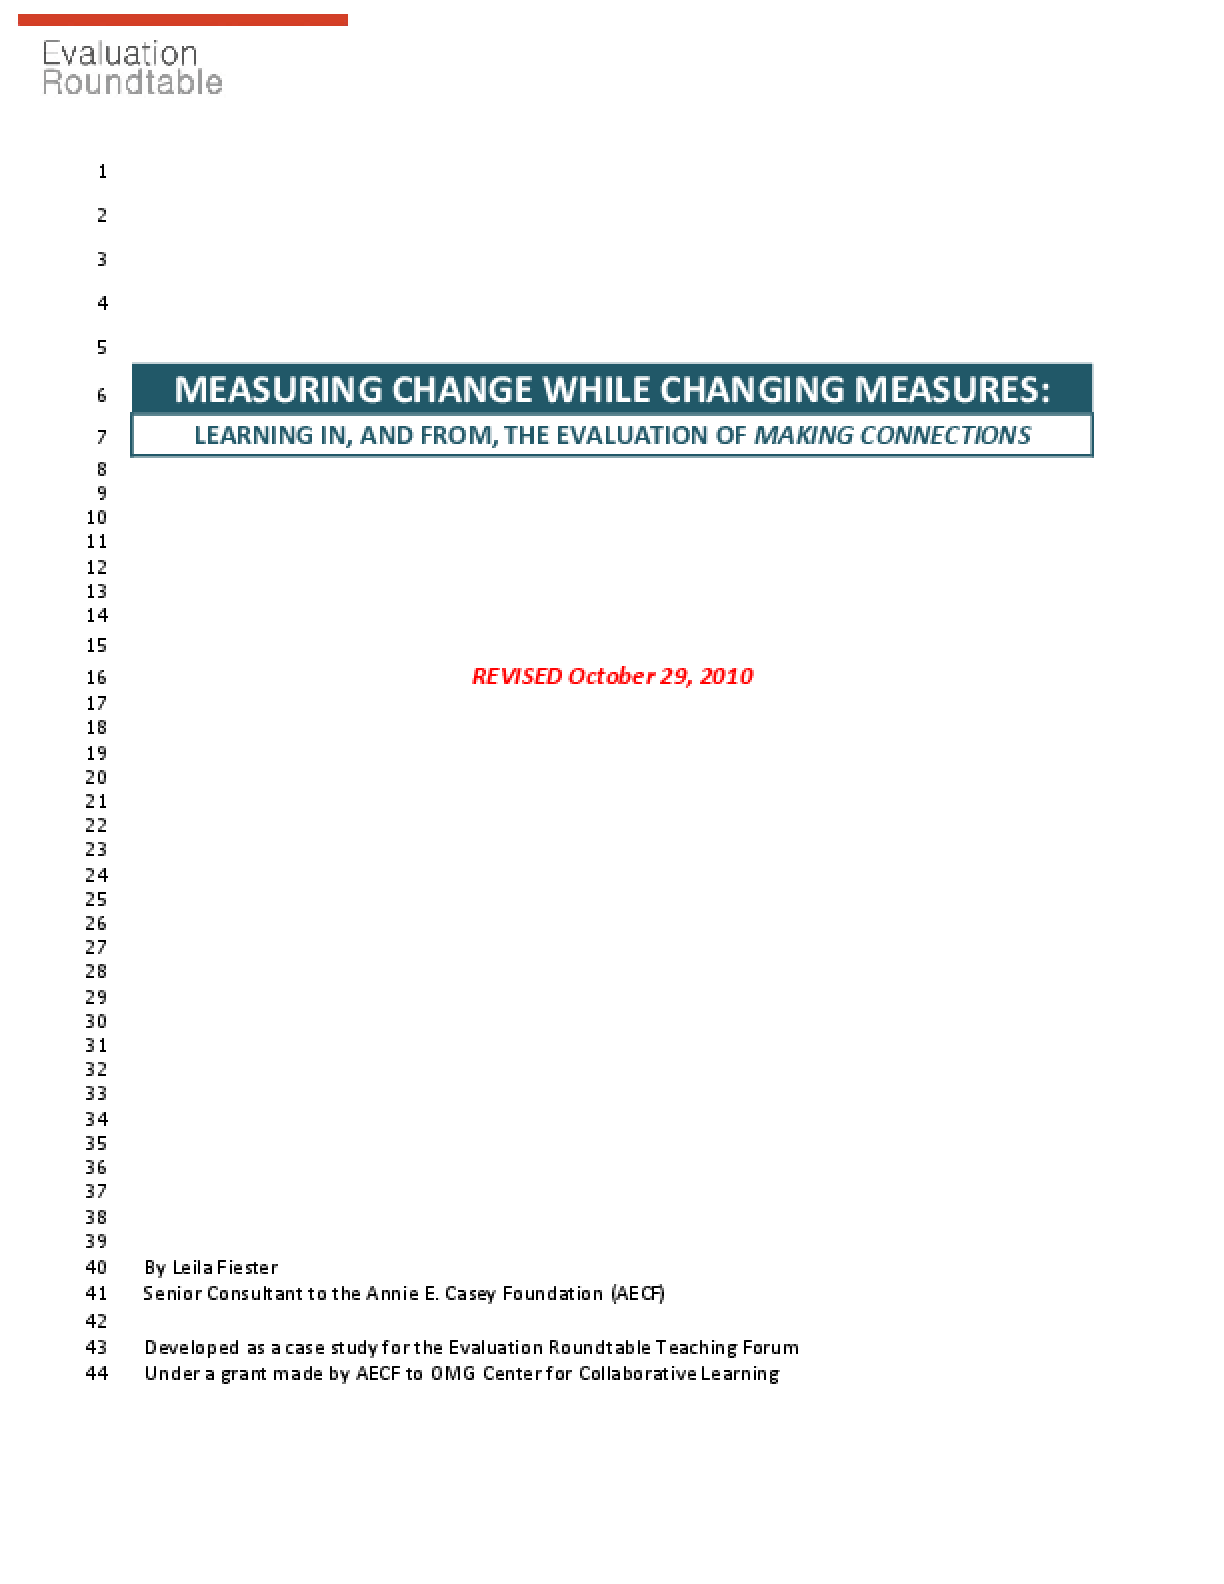 Measuring Change While Changing Measures: Learning In, and From, the Evaluation of Making Connections